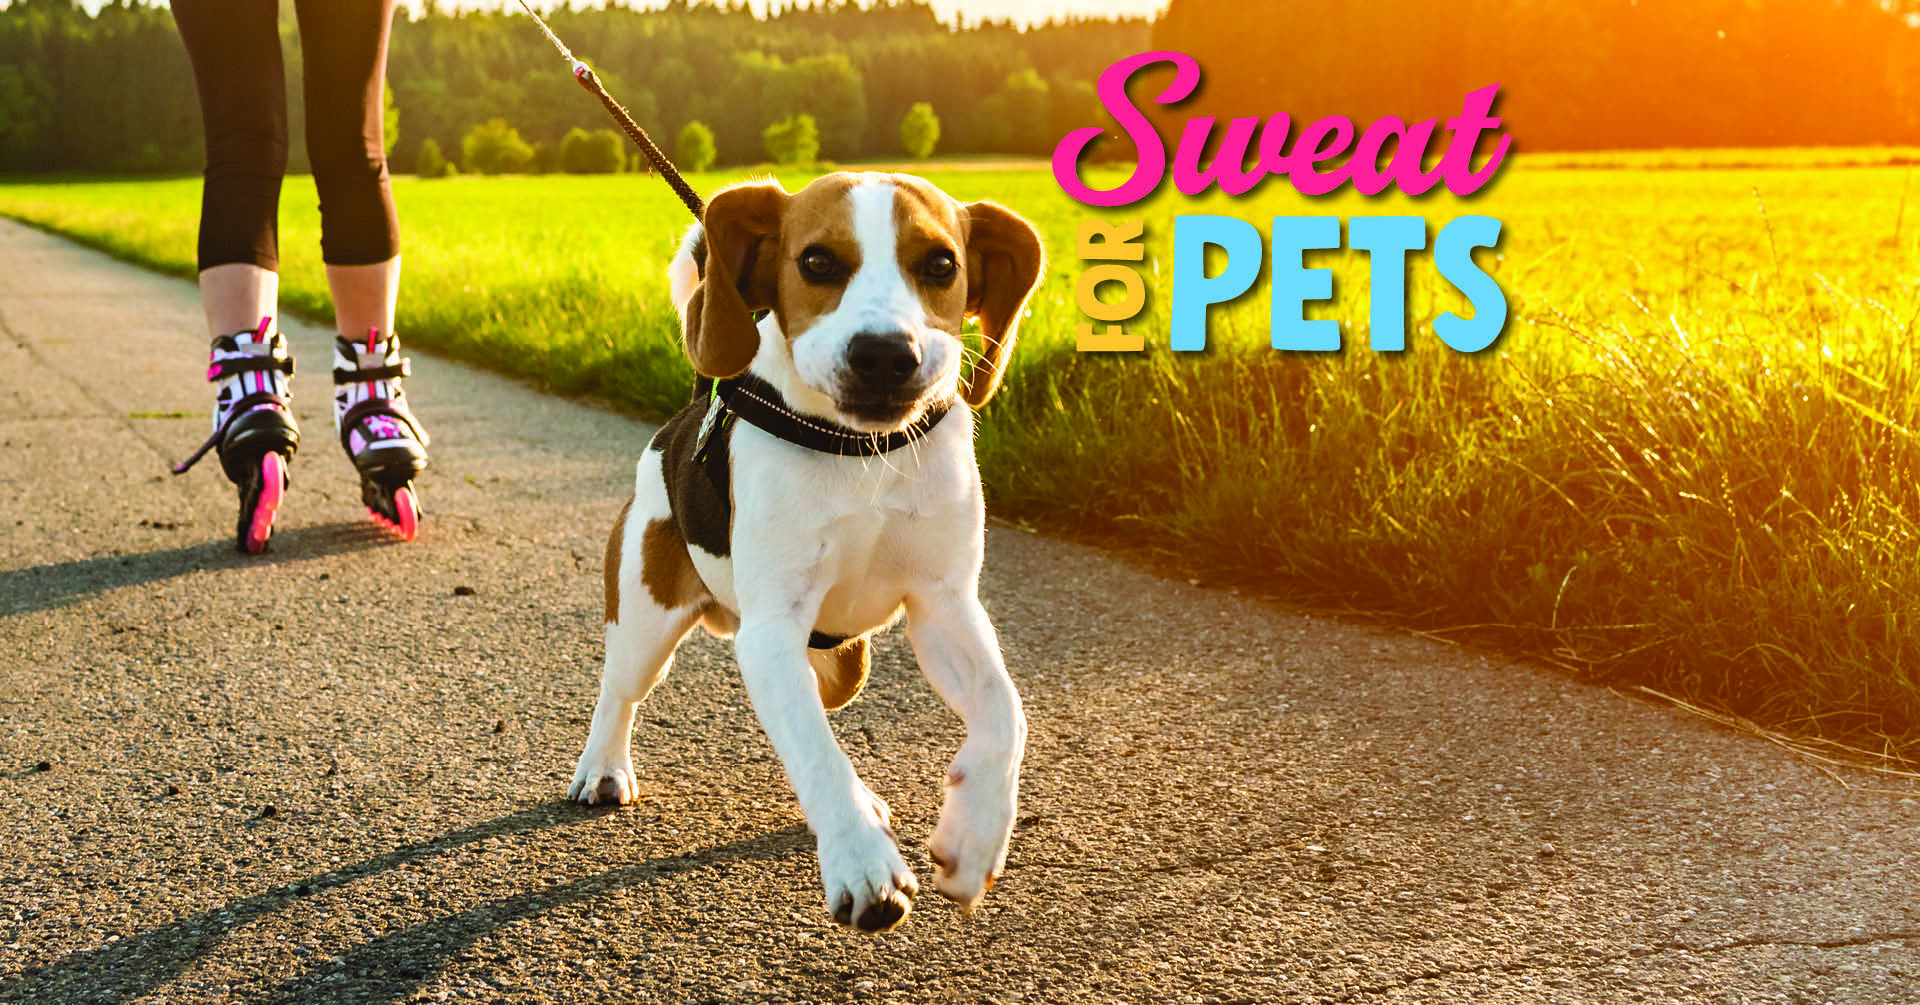 Sweat for Pets Facebook Cover Photo